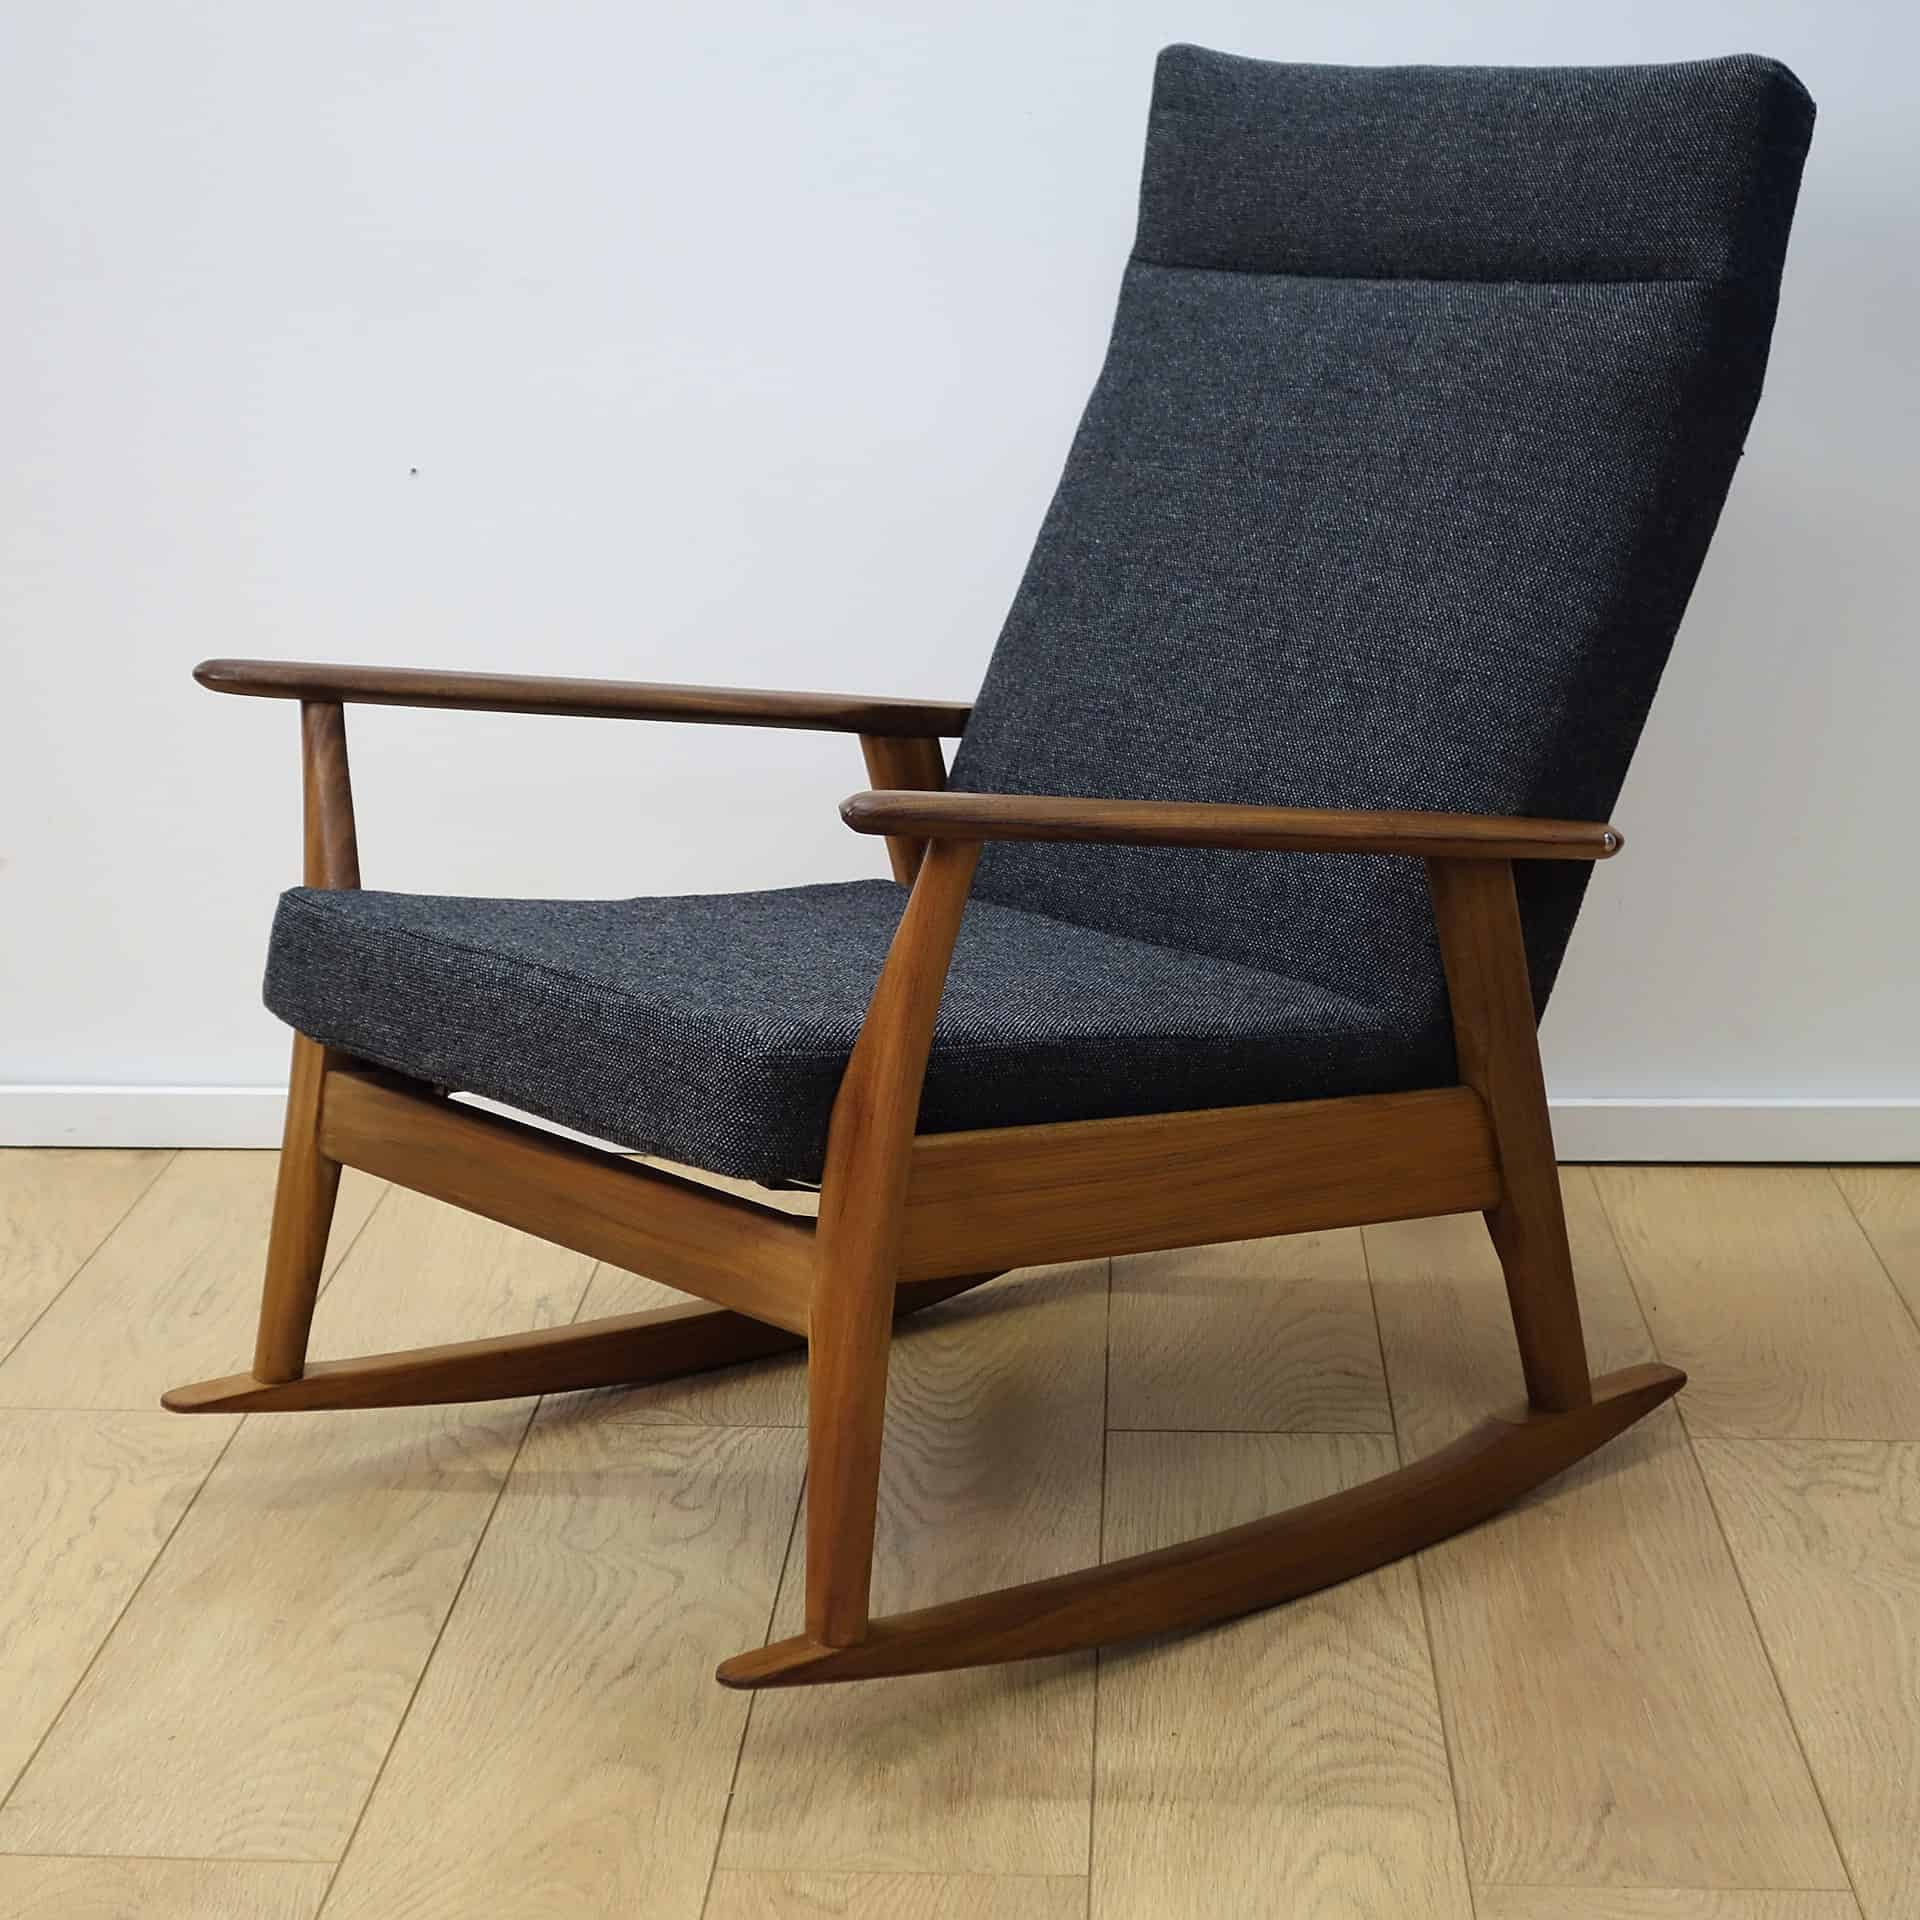 1960s teak rocking chair